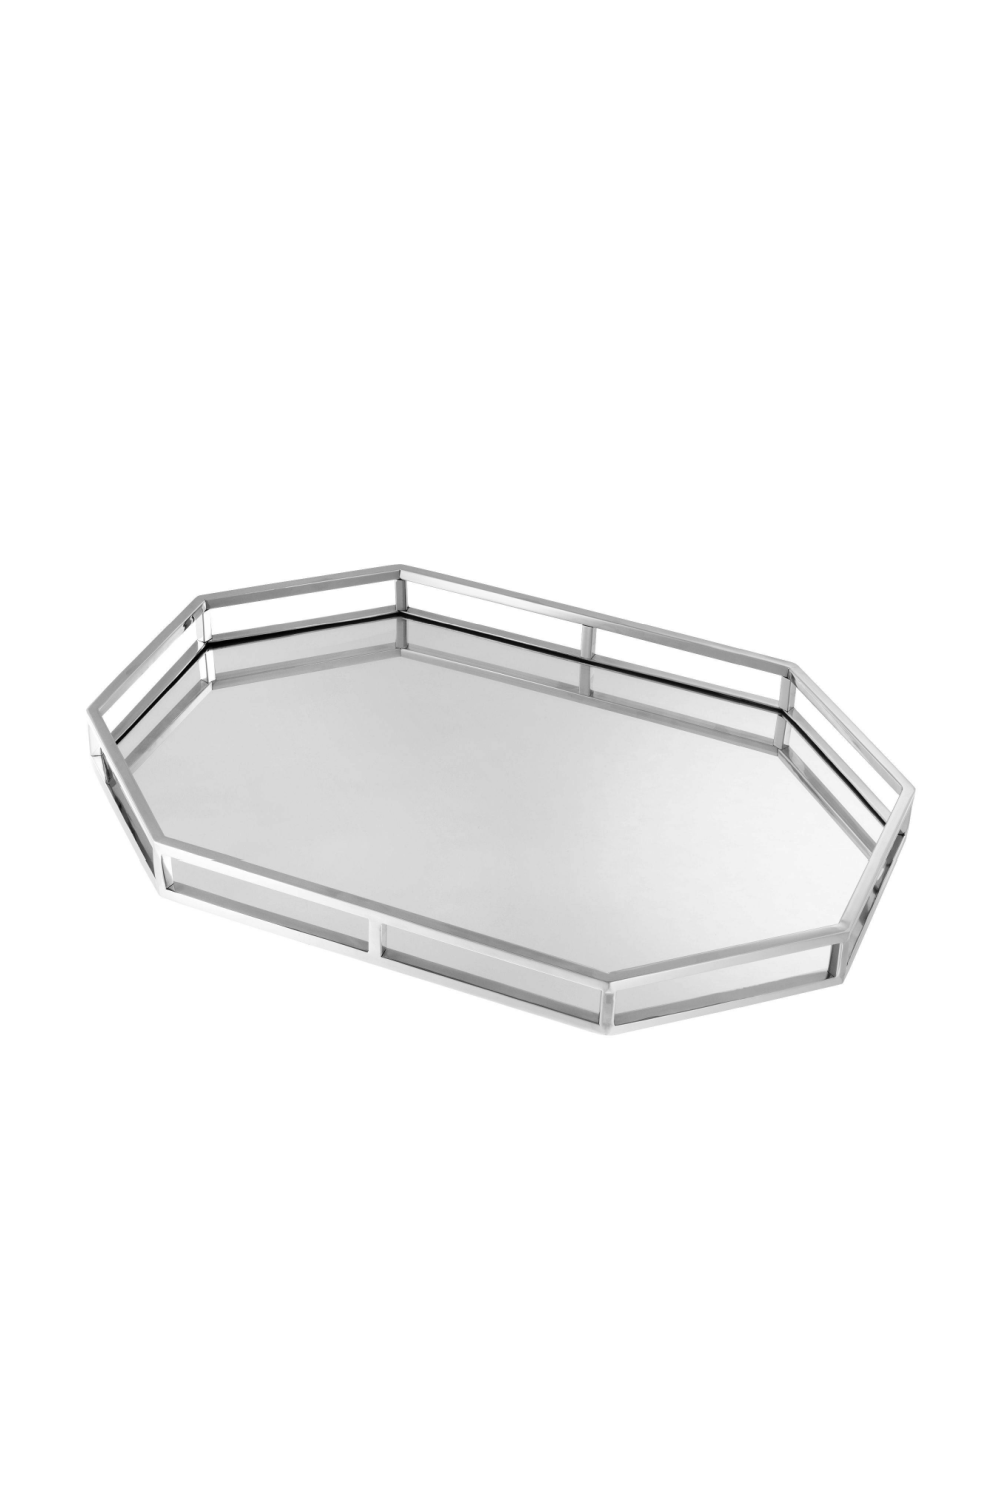 Silver Tray | Eichholtz Pelagos | OROA Modern & Luxury Furniture